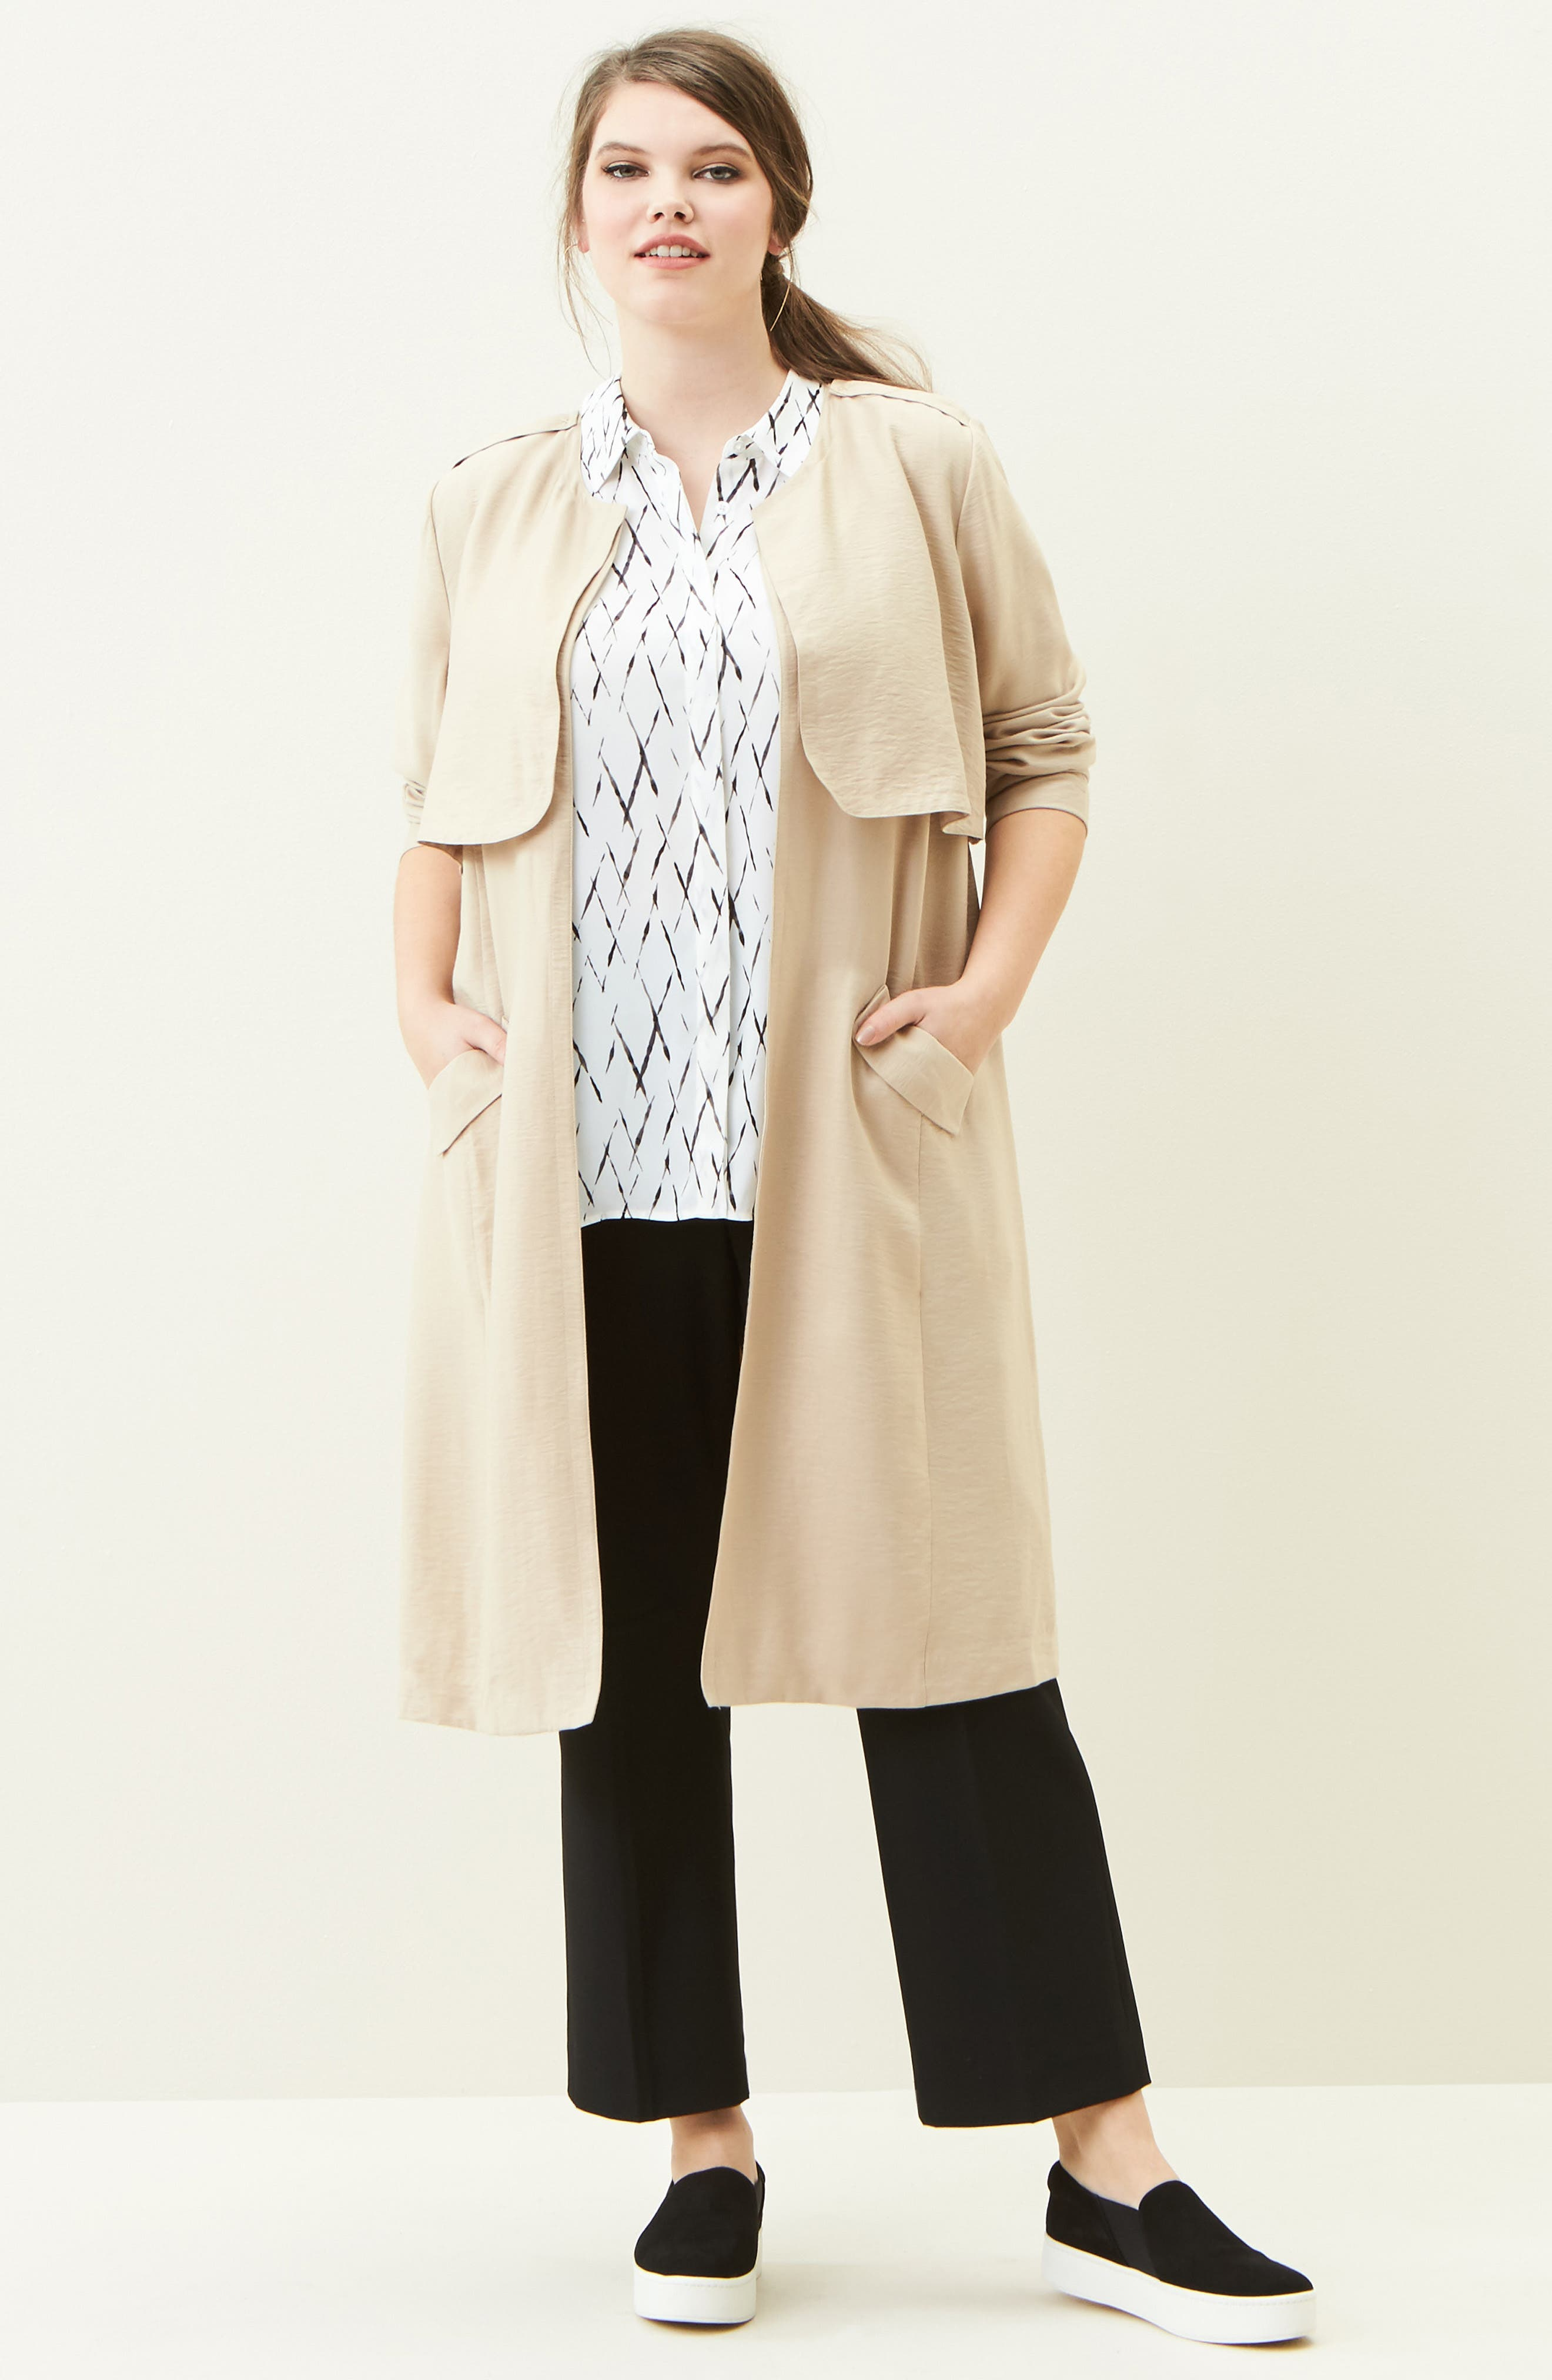 Sejour Jacket, Tunic & Pants Outfit with Accessories (Plus Size)